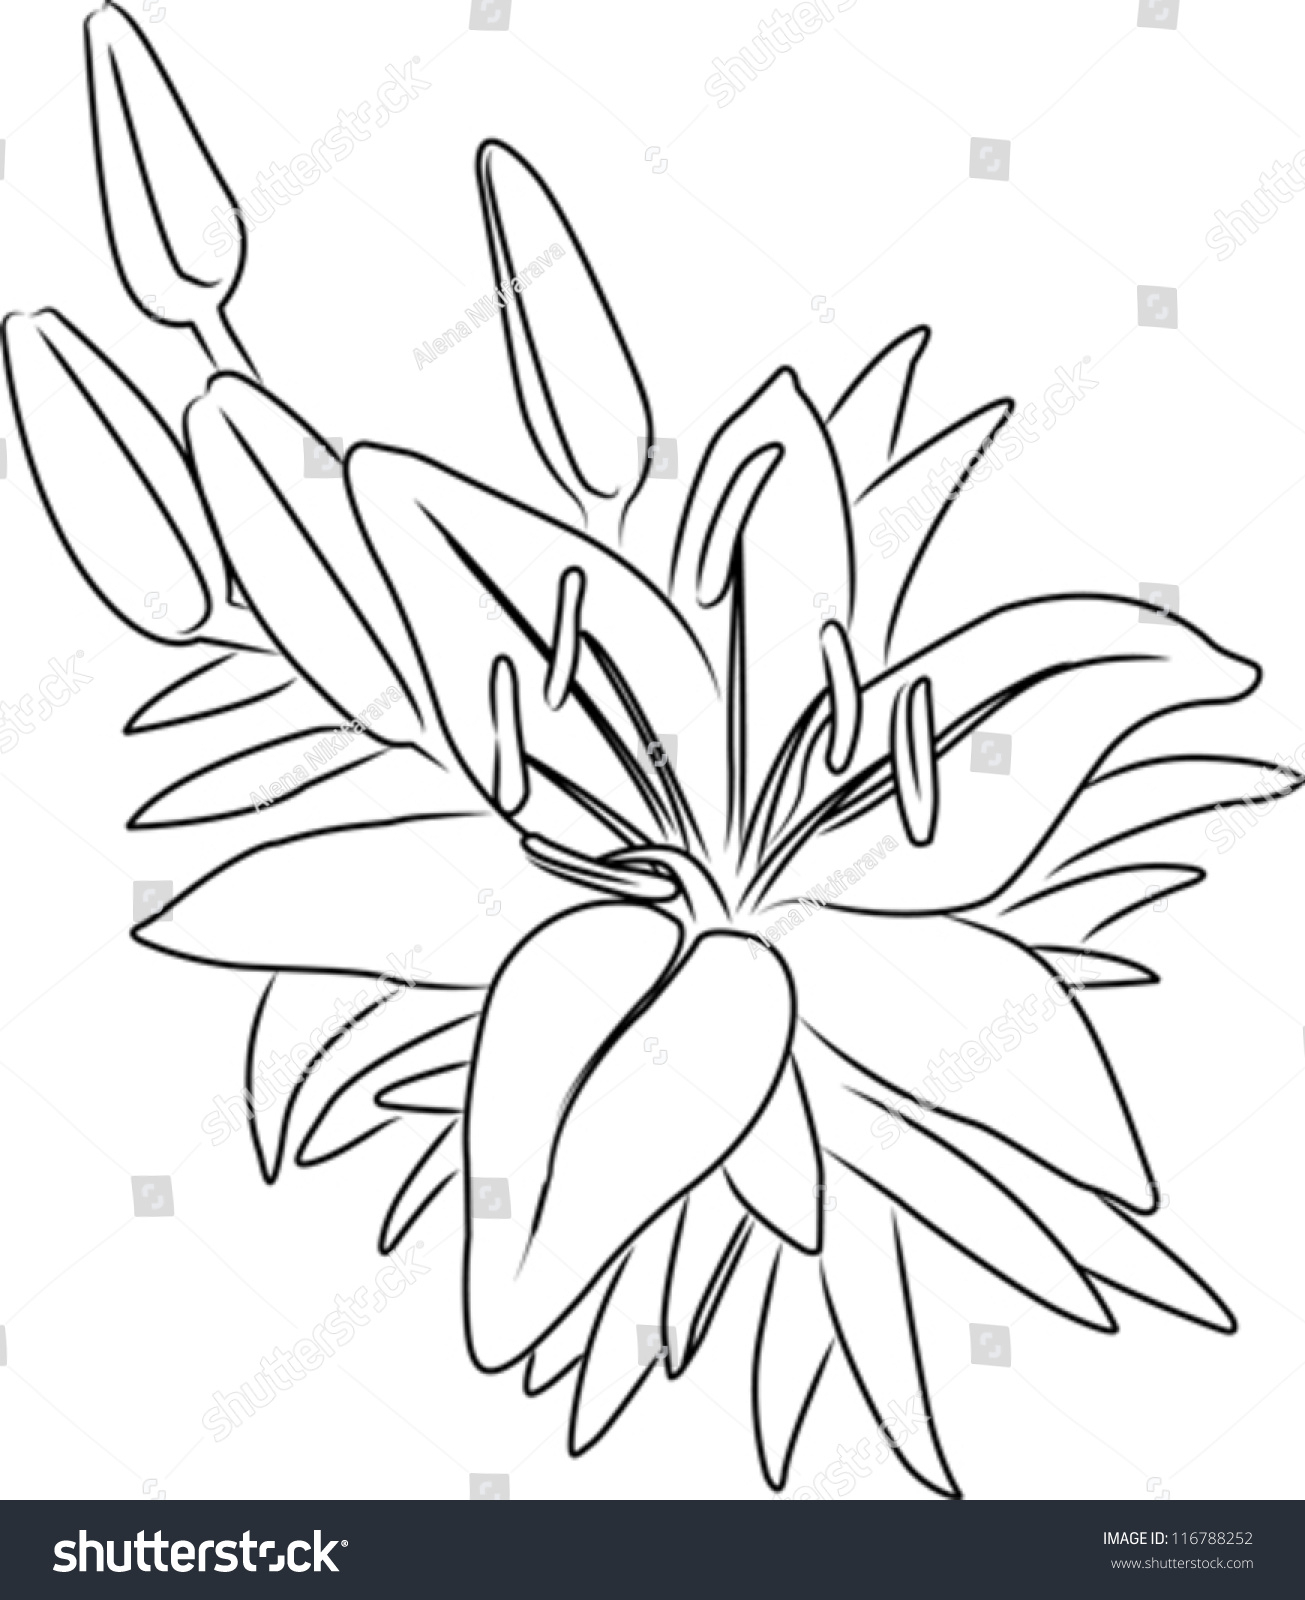 1305x1600 Flower Bouquet Drawing Simple Royalty Free Blooming Asiatic Lily